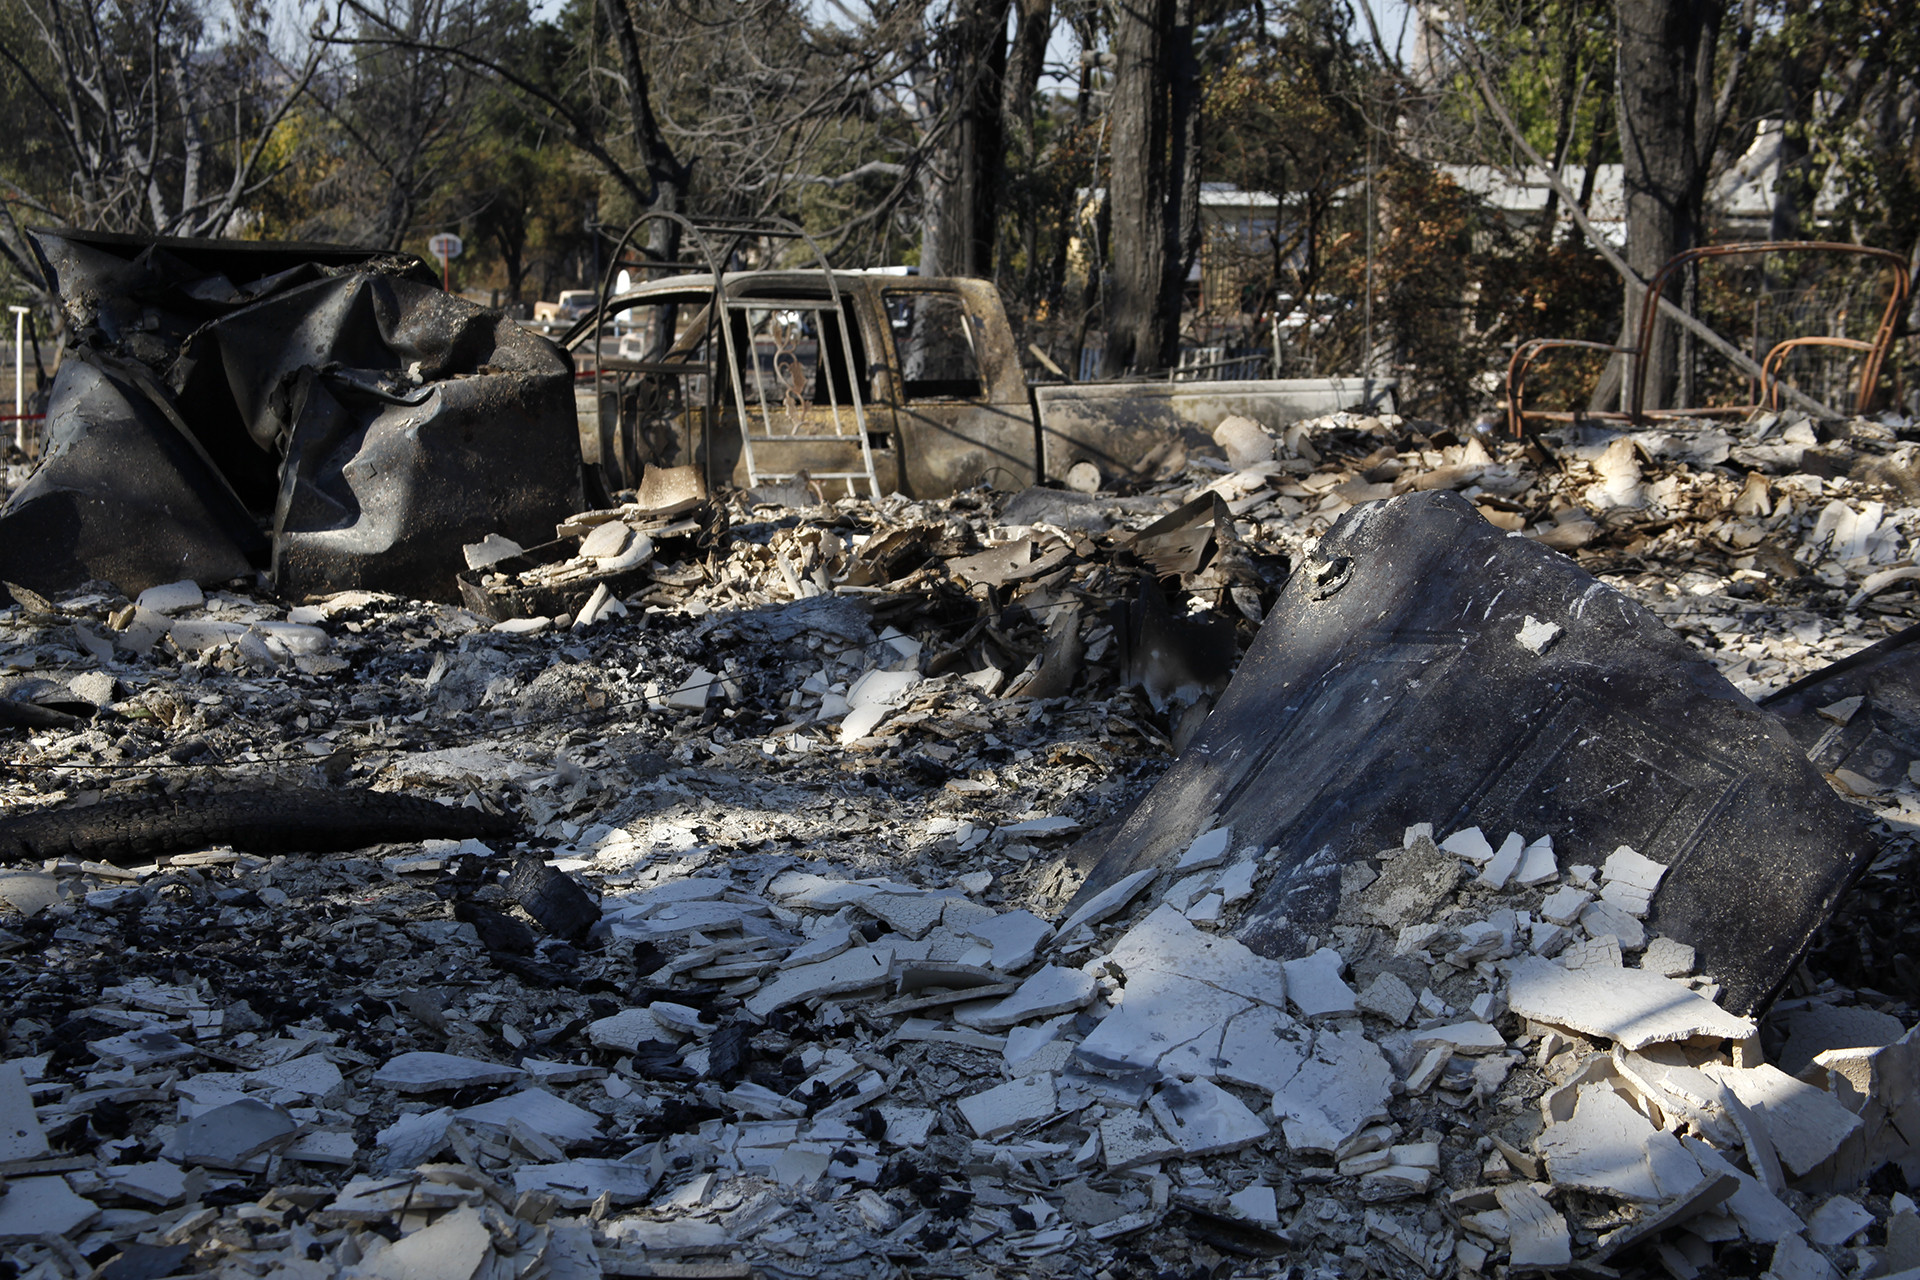 All that remained of the Skidmores' home and eight rental cabins after the Clayton Fire in mid-August.